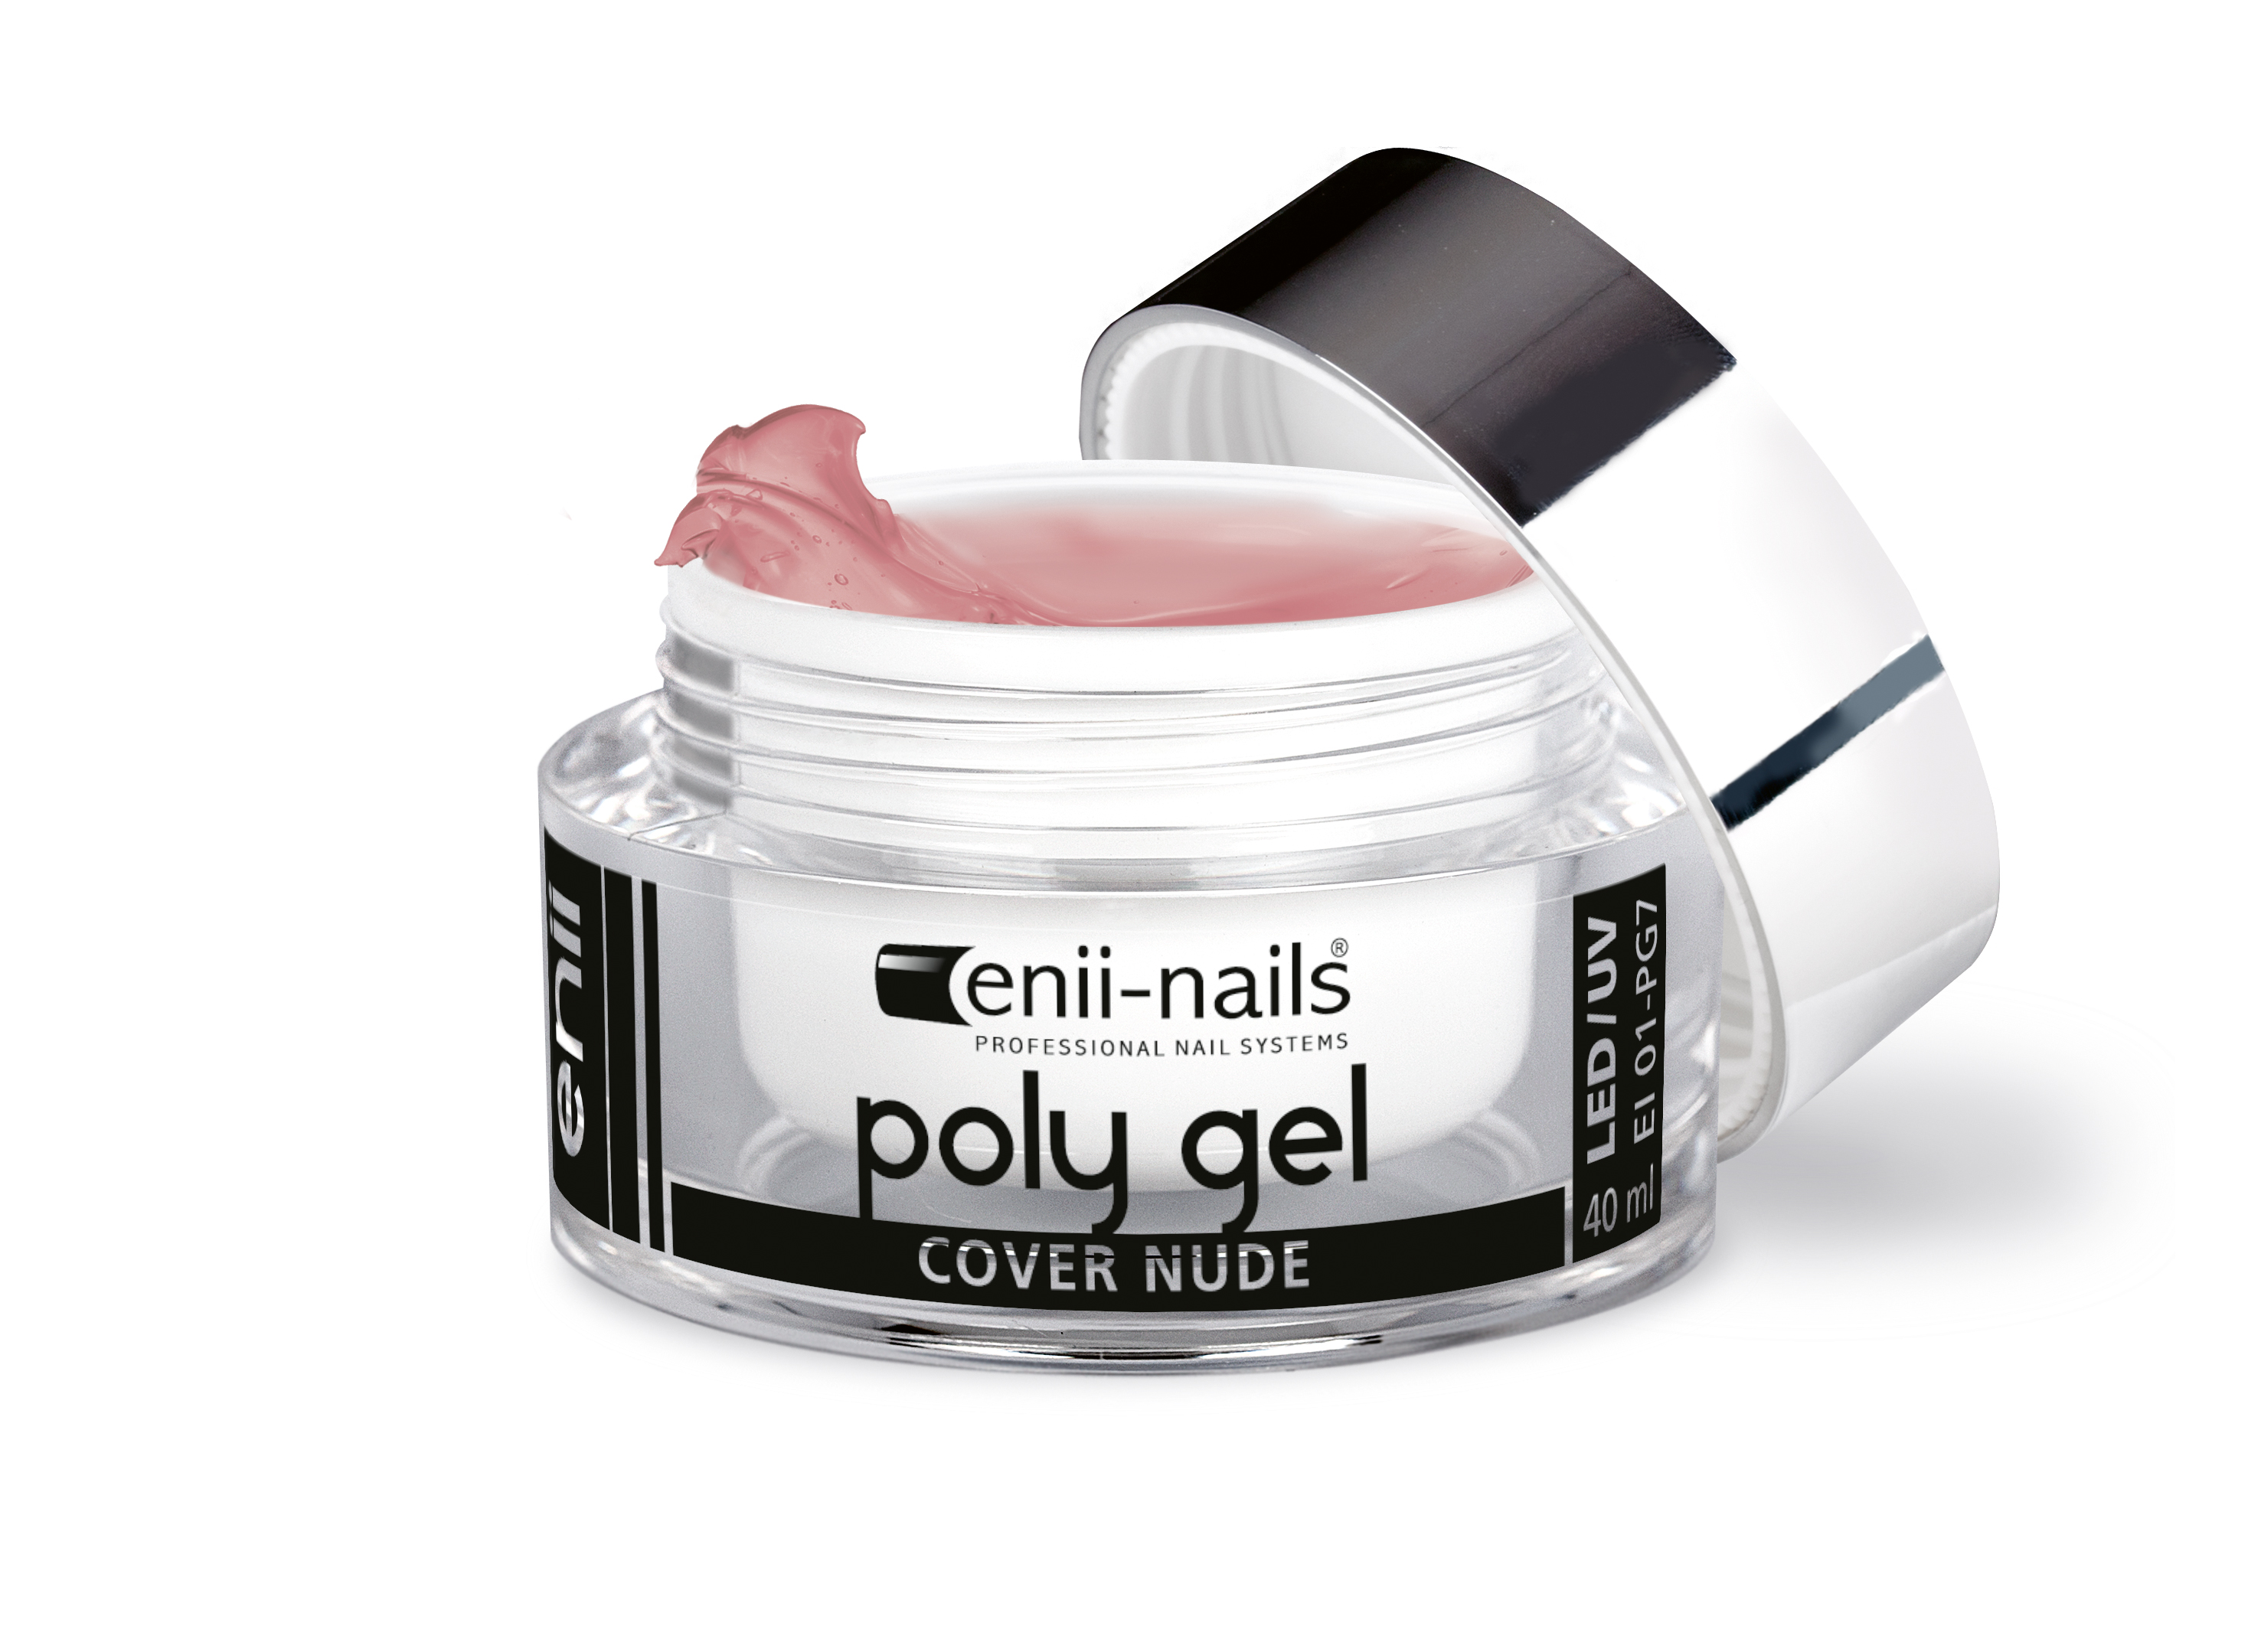 ENII-NAILS ENII POLY GEL - cover nude 40 ml